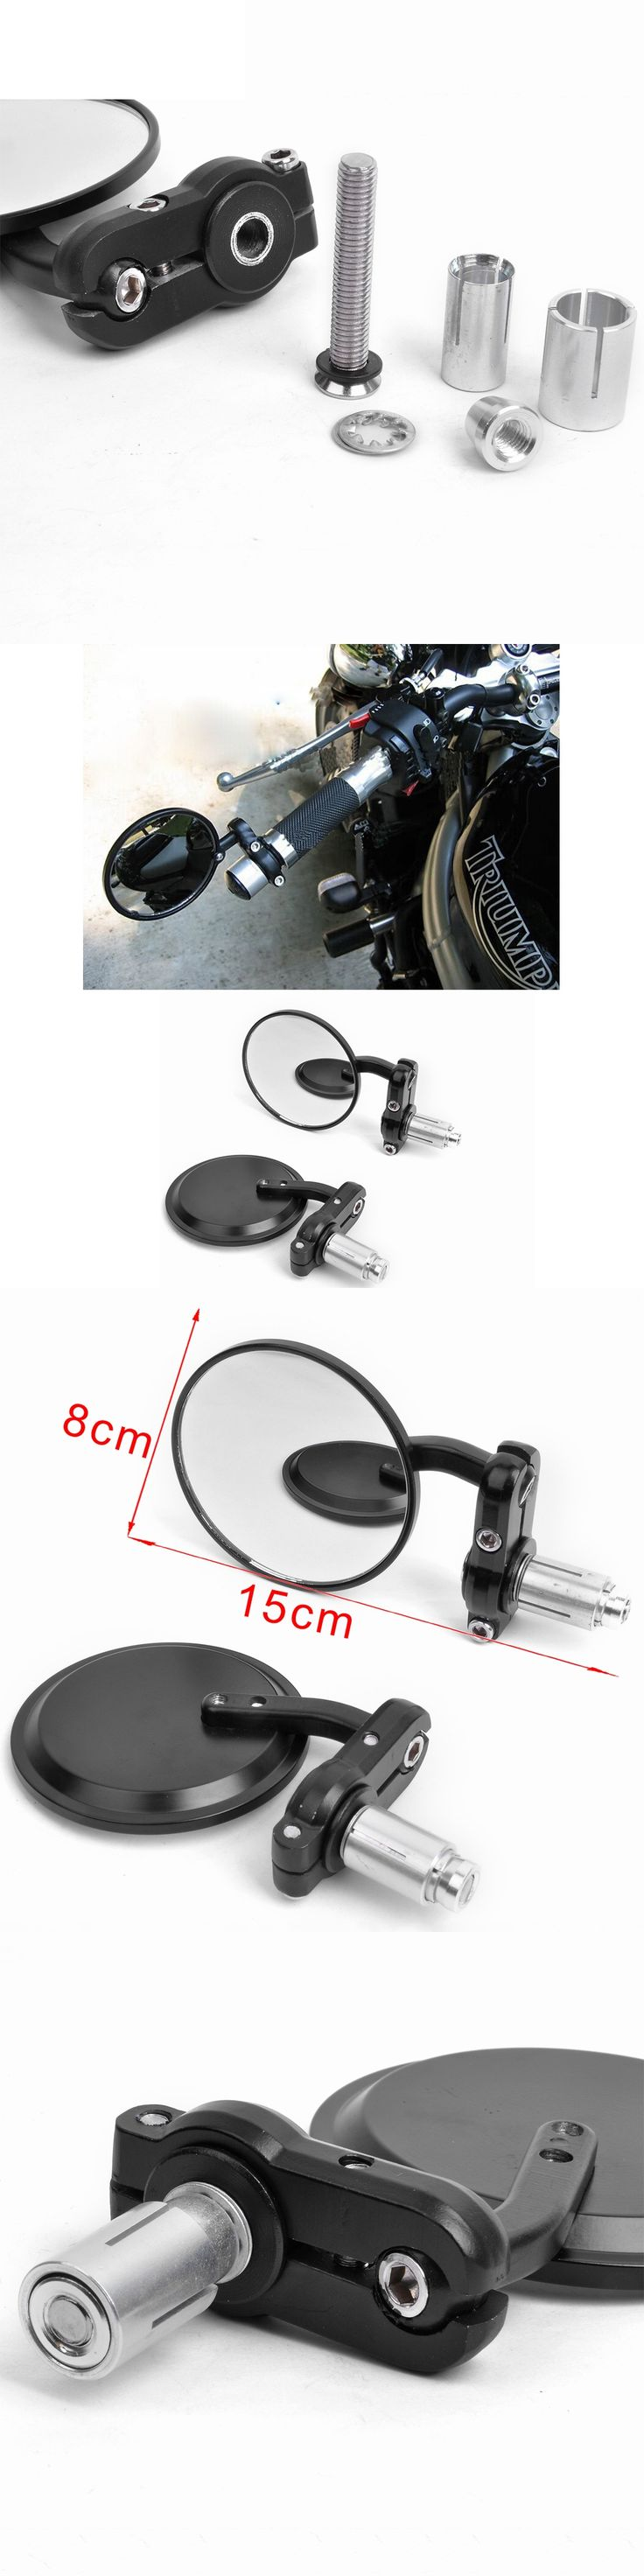 """MOTORCYCLE 7/8"""" HANDLE BAR END SIDE REARVIEW REAR MIRRORS CAFE RACER BOBBER CLUBMAN 3"""" ROUND retroviseur moto motorcycle mirror"""